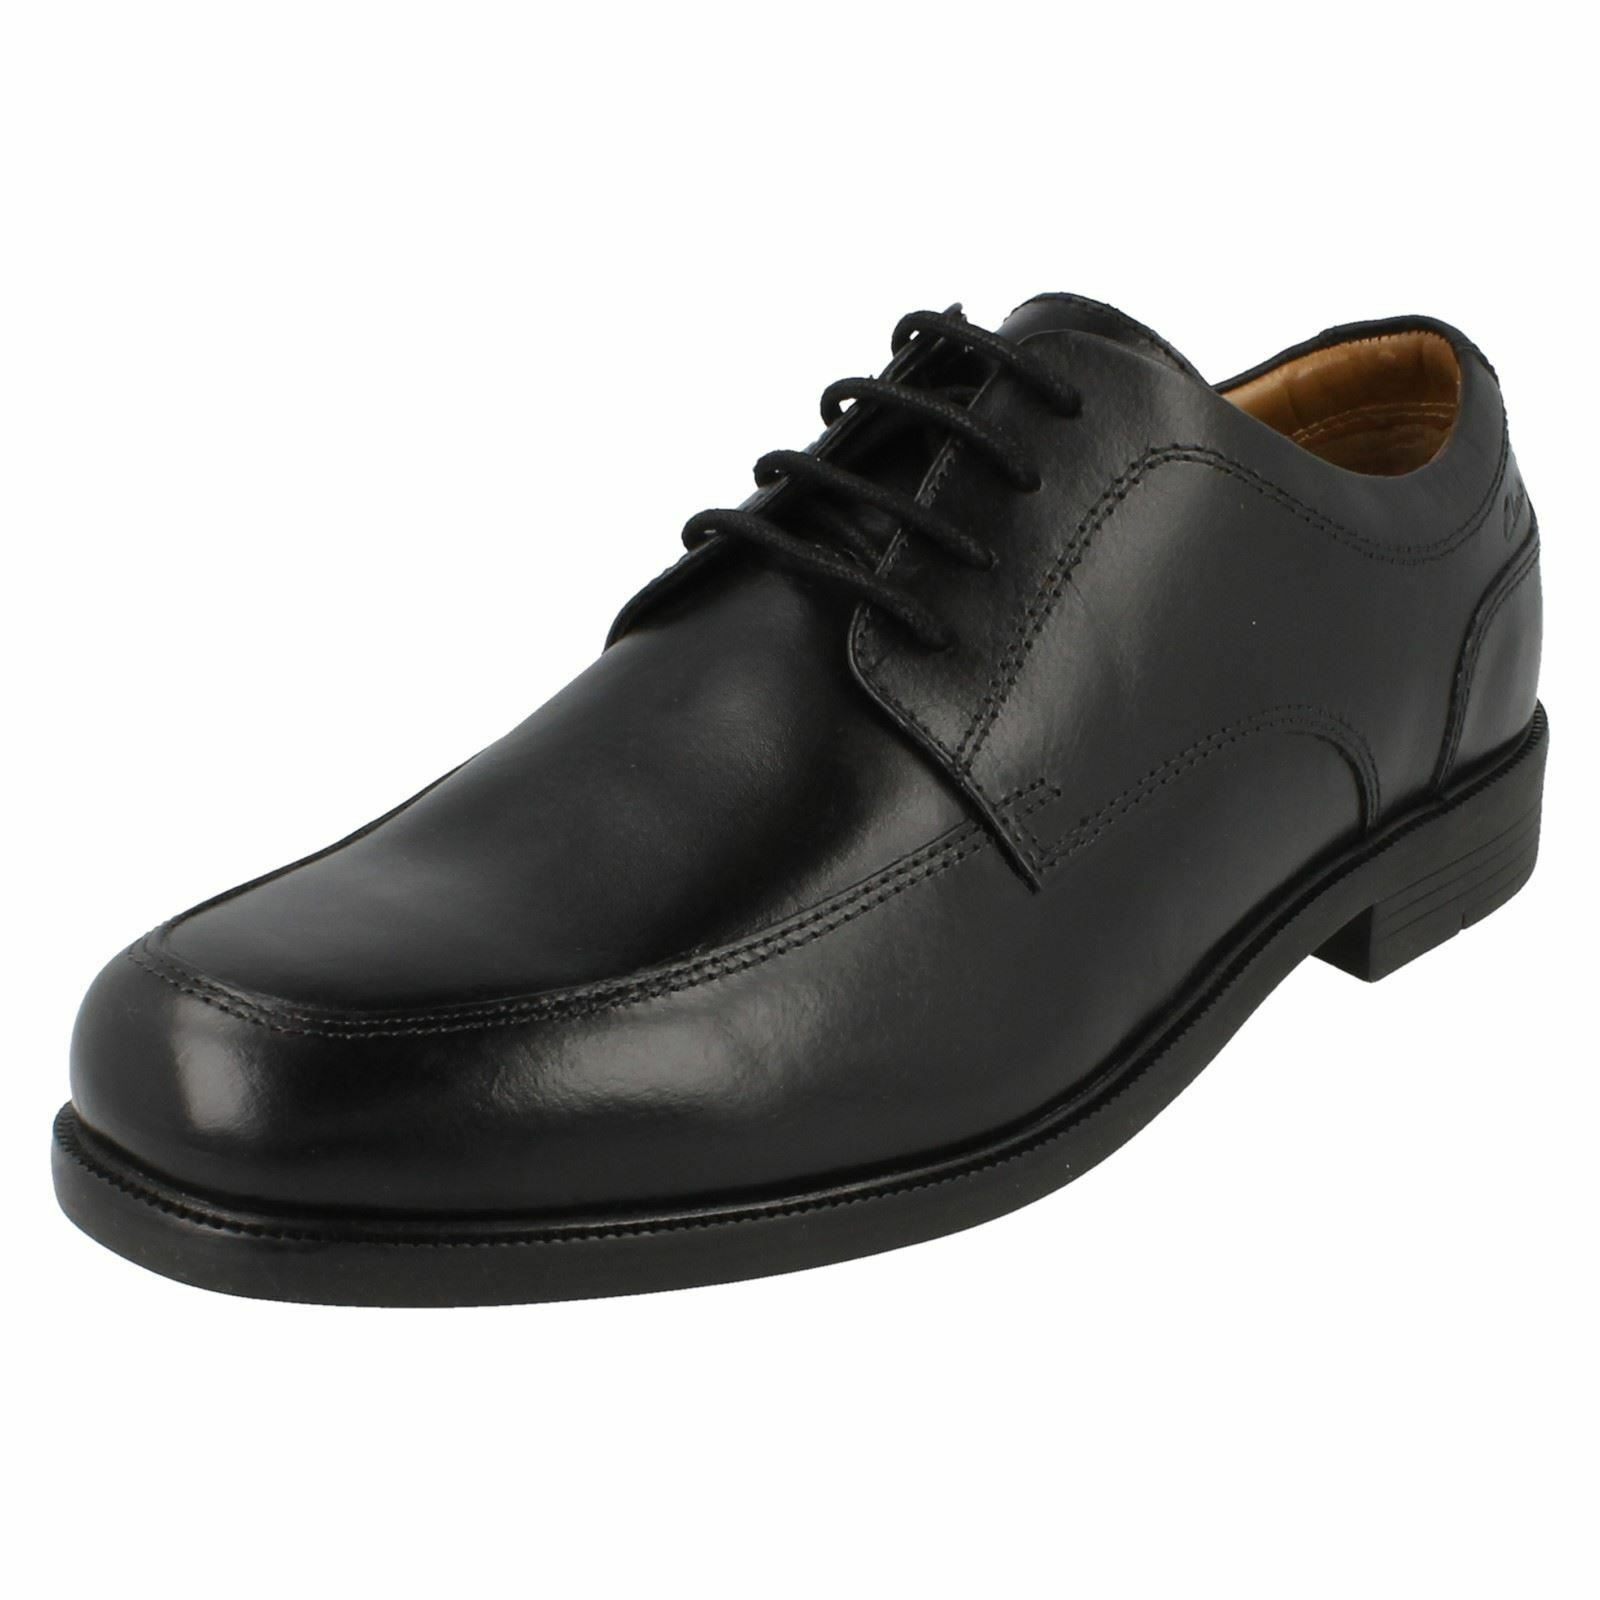 MENS CLARKS BLACK LEATHER EXTRAWIDE FORMAL SMART LACE UP SHOES BEESTON APRON